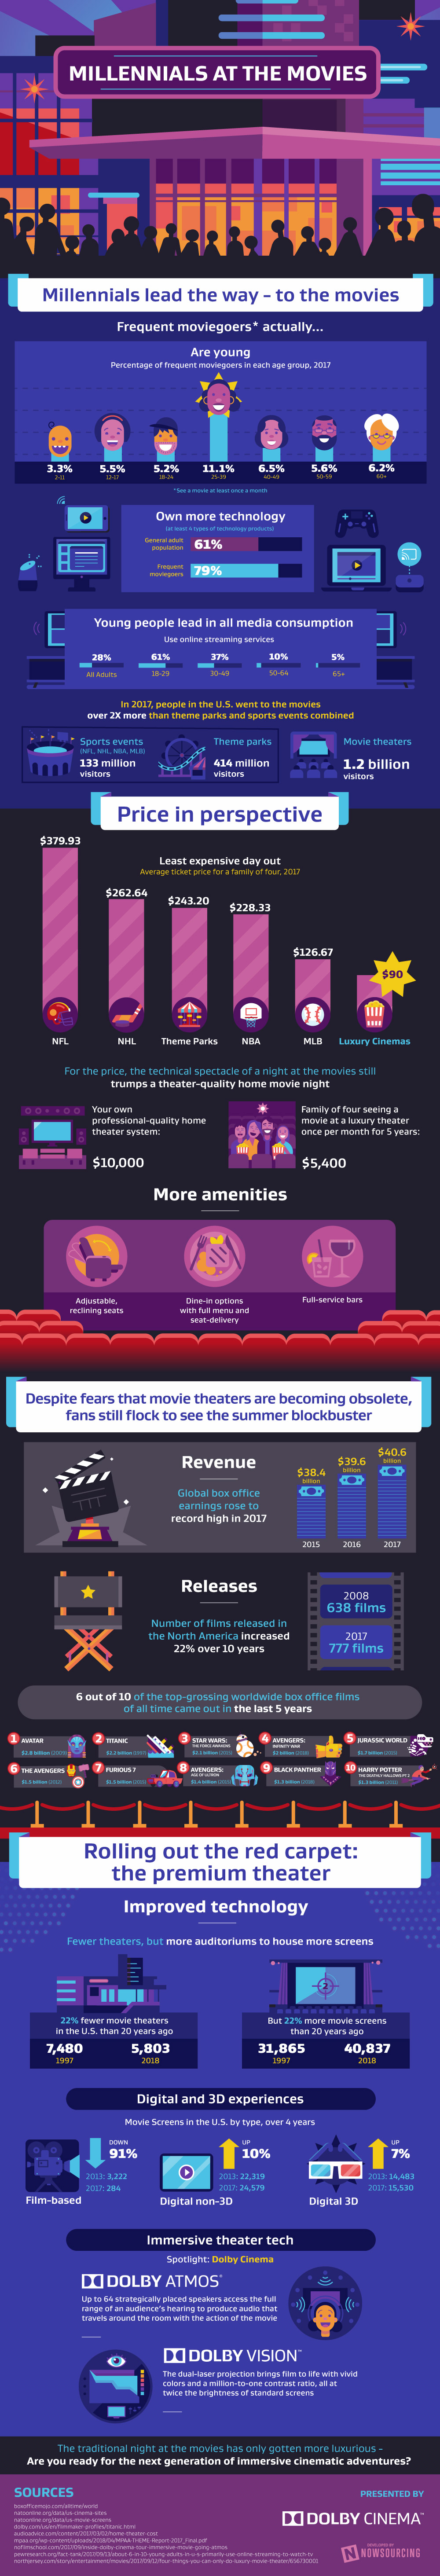 Infographic - Millennials at the Movies